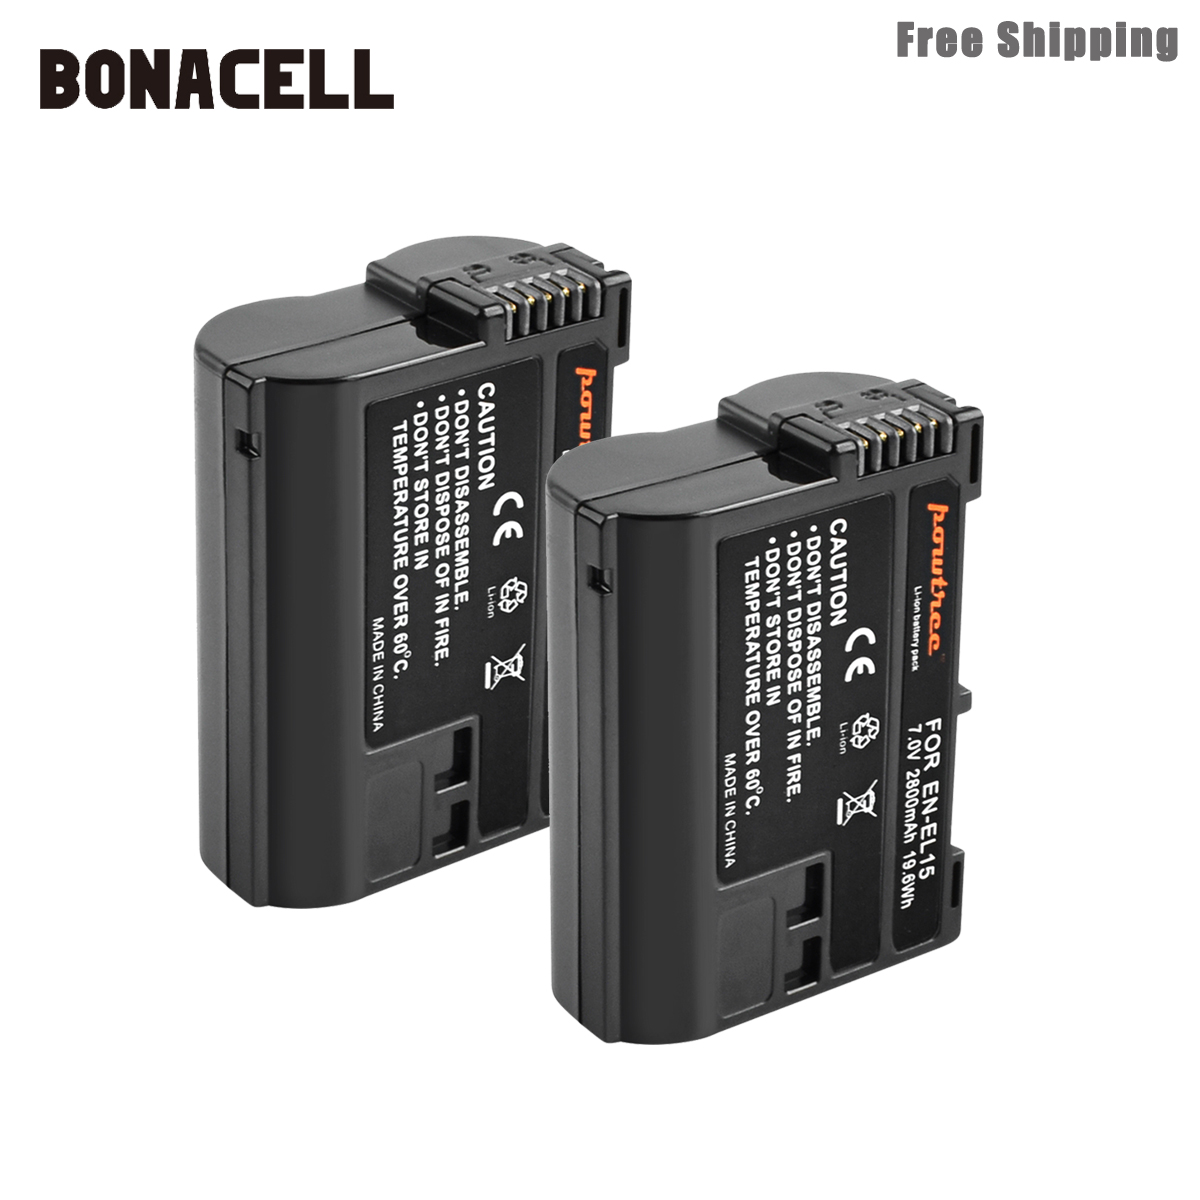 Bonacell 2800mAh EN EL15 ENEL15 EN EL15 Camera Battery For Nikon DSLR D600 D610 D800 D800E D810 D7000 D7100 D7200 L15-in Digital Batteries from Consumer Electronics